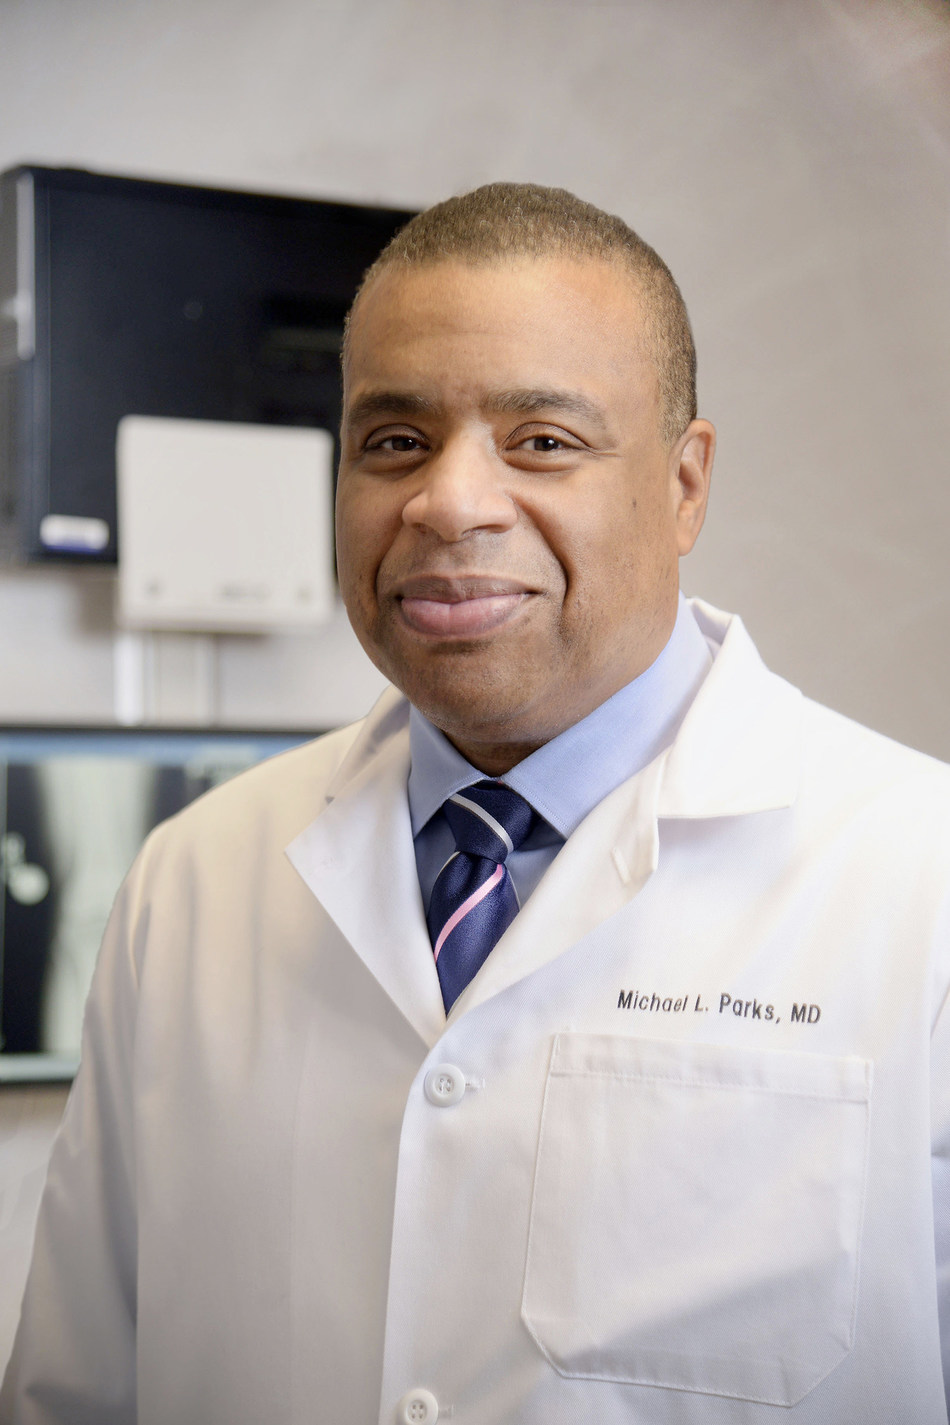 Michael L. Parks, MD, clinical director of Orthopedic Surgery at HSS, received the 2019 Diversity Award from AAOS.